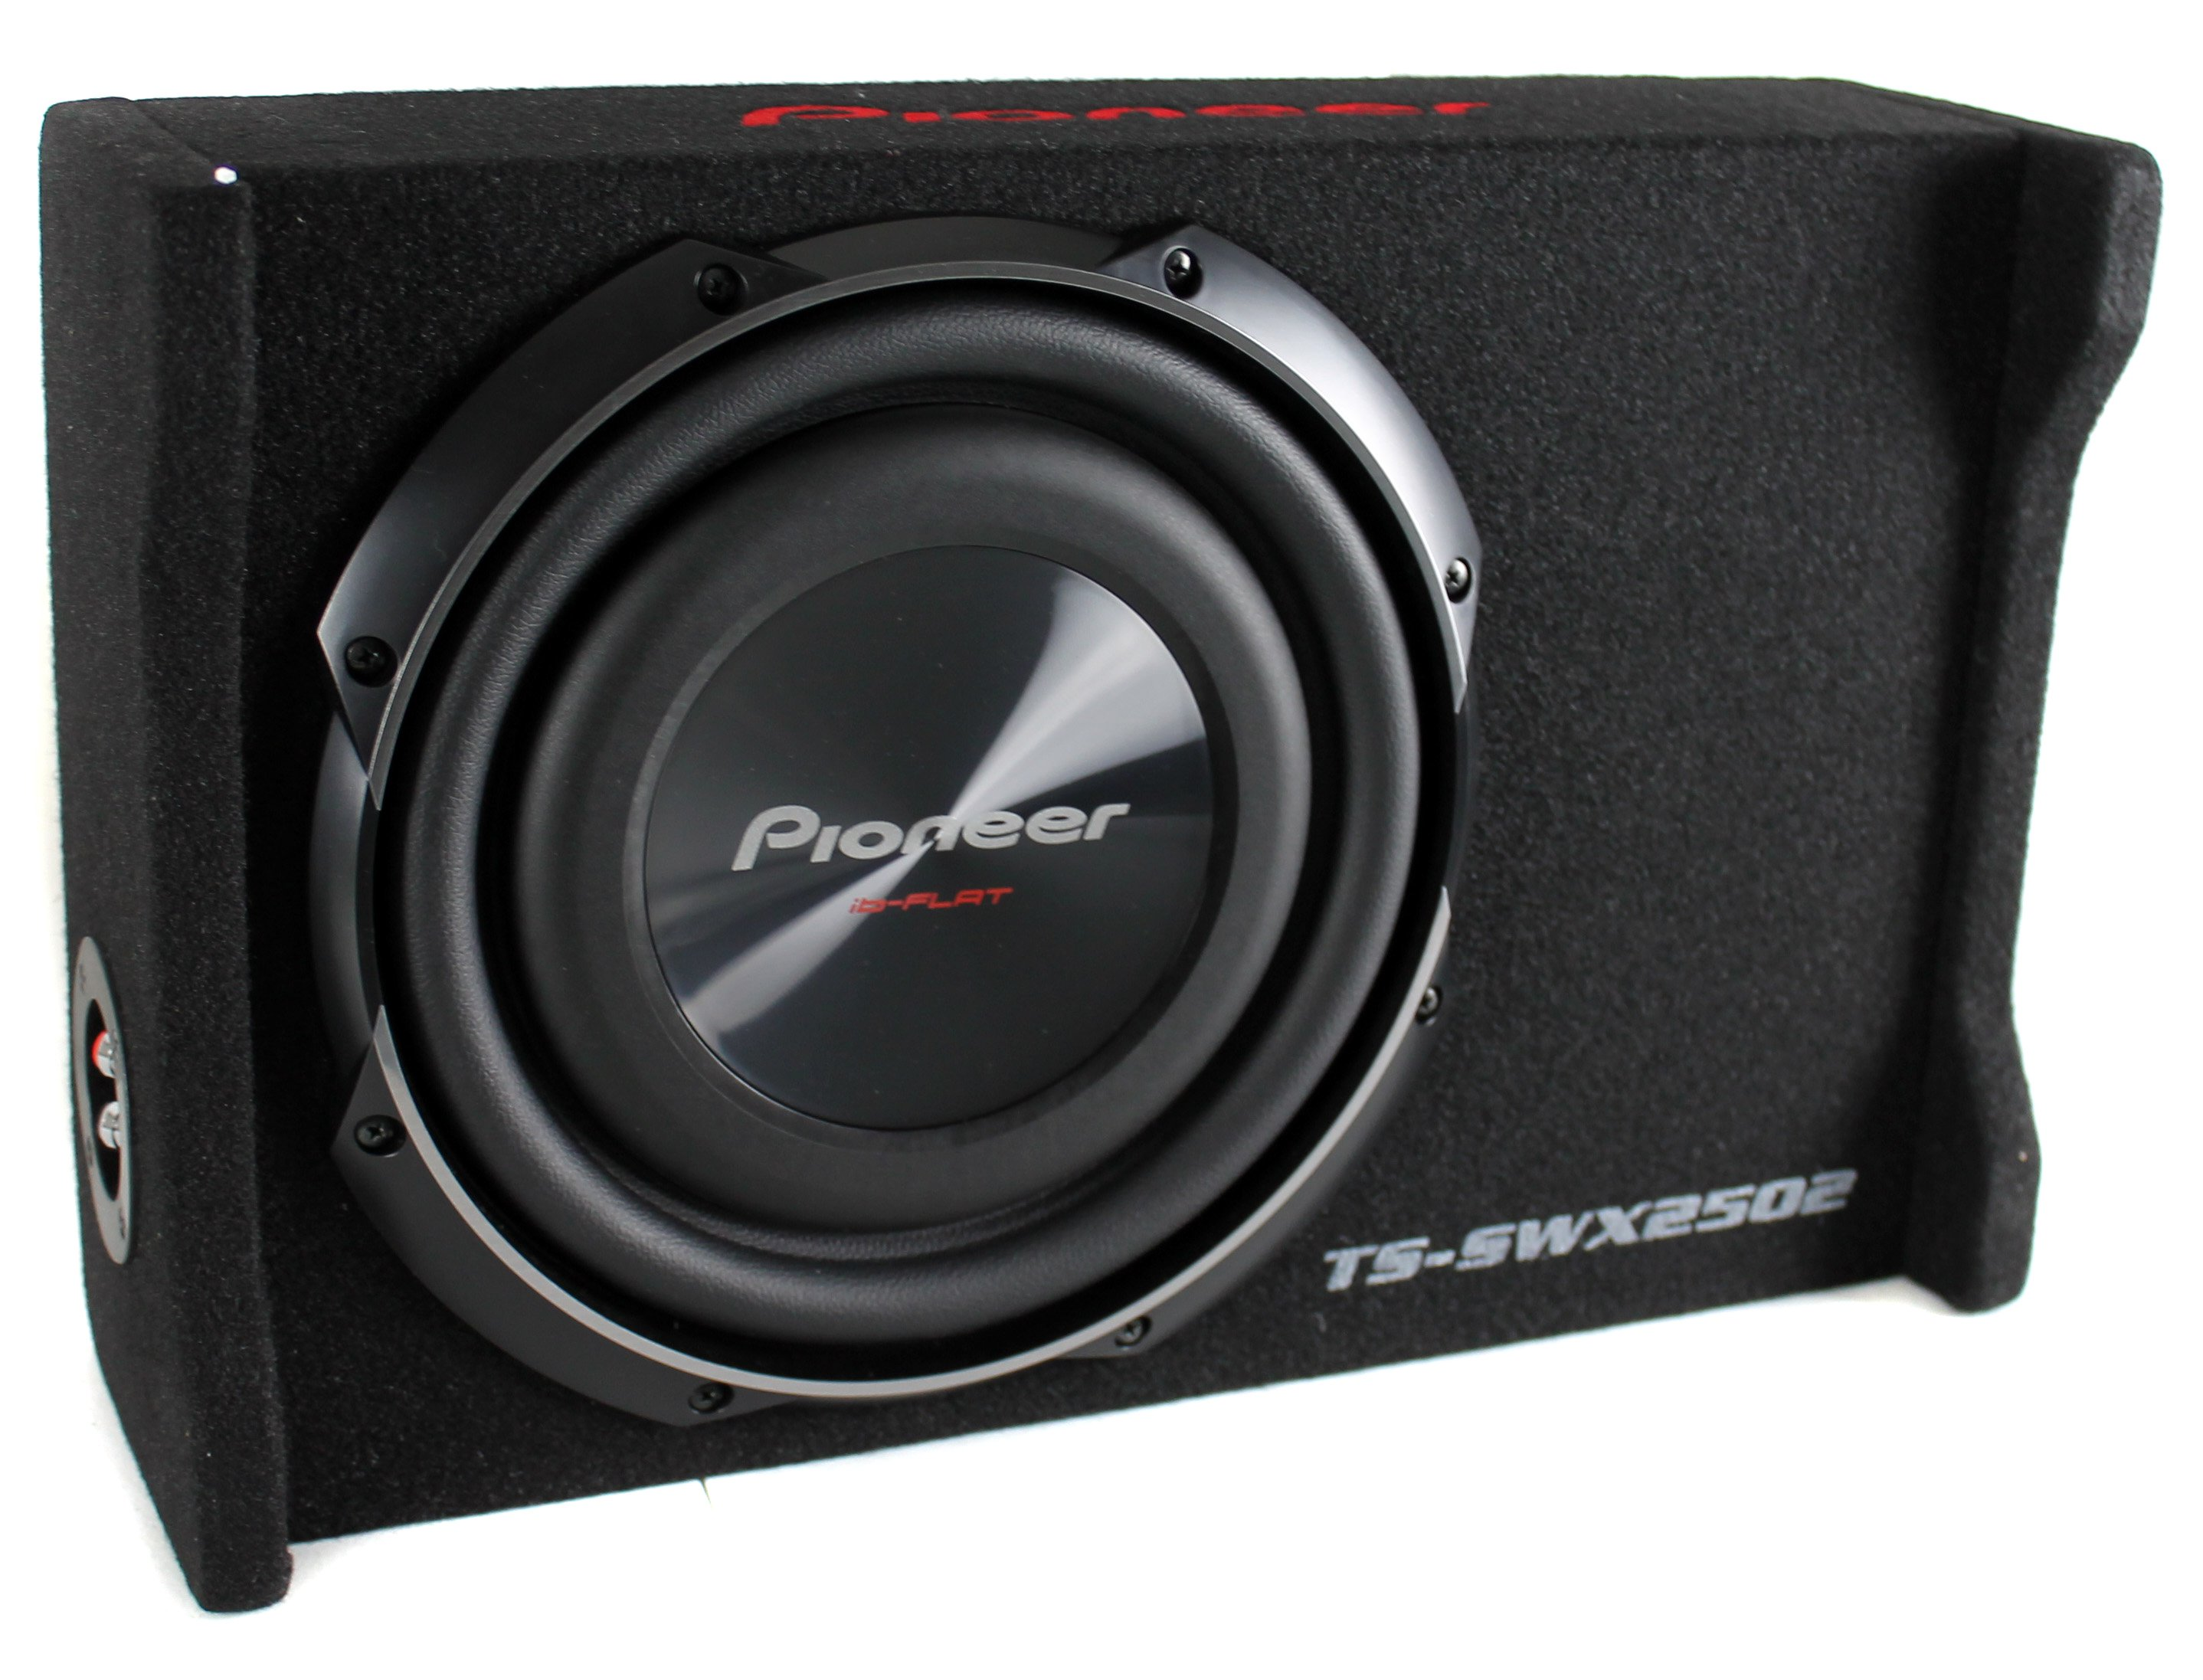 Kicker PT250 10 Subwoofer with BuiltIn 100W Amplifier Walmartcom